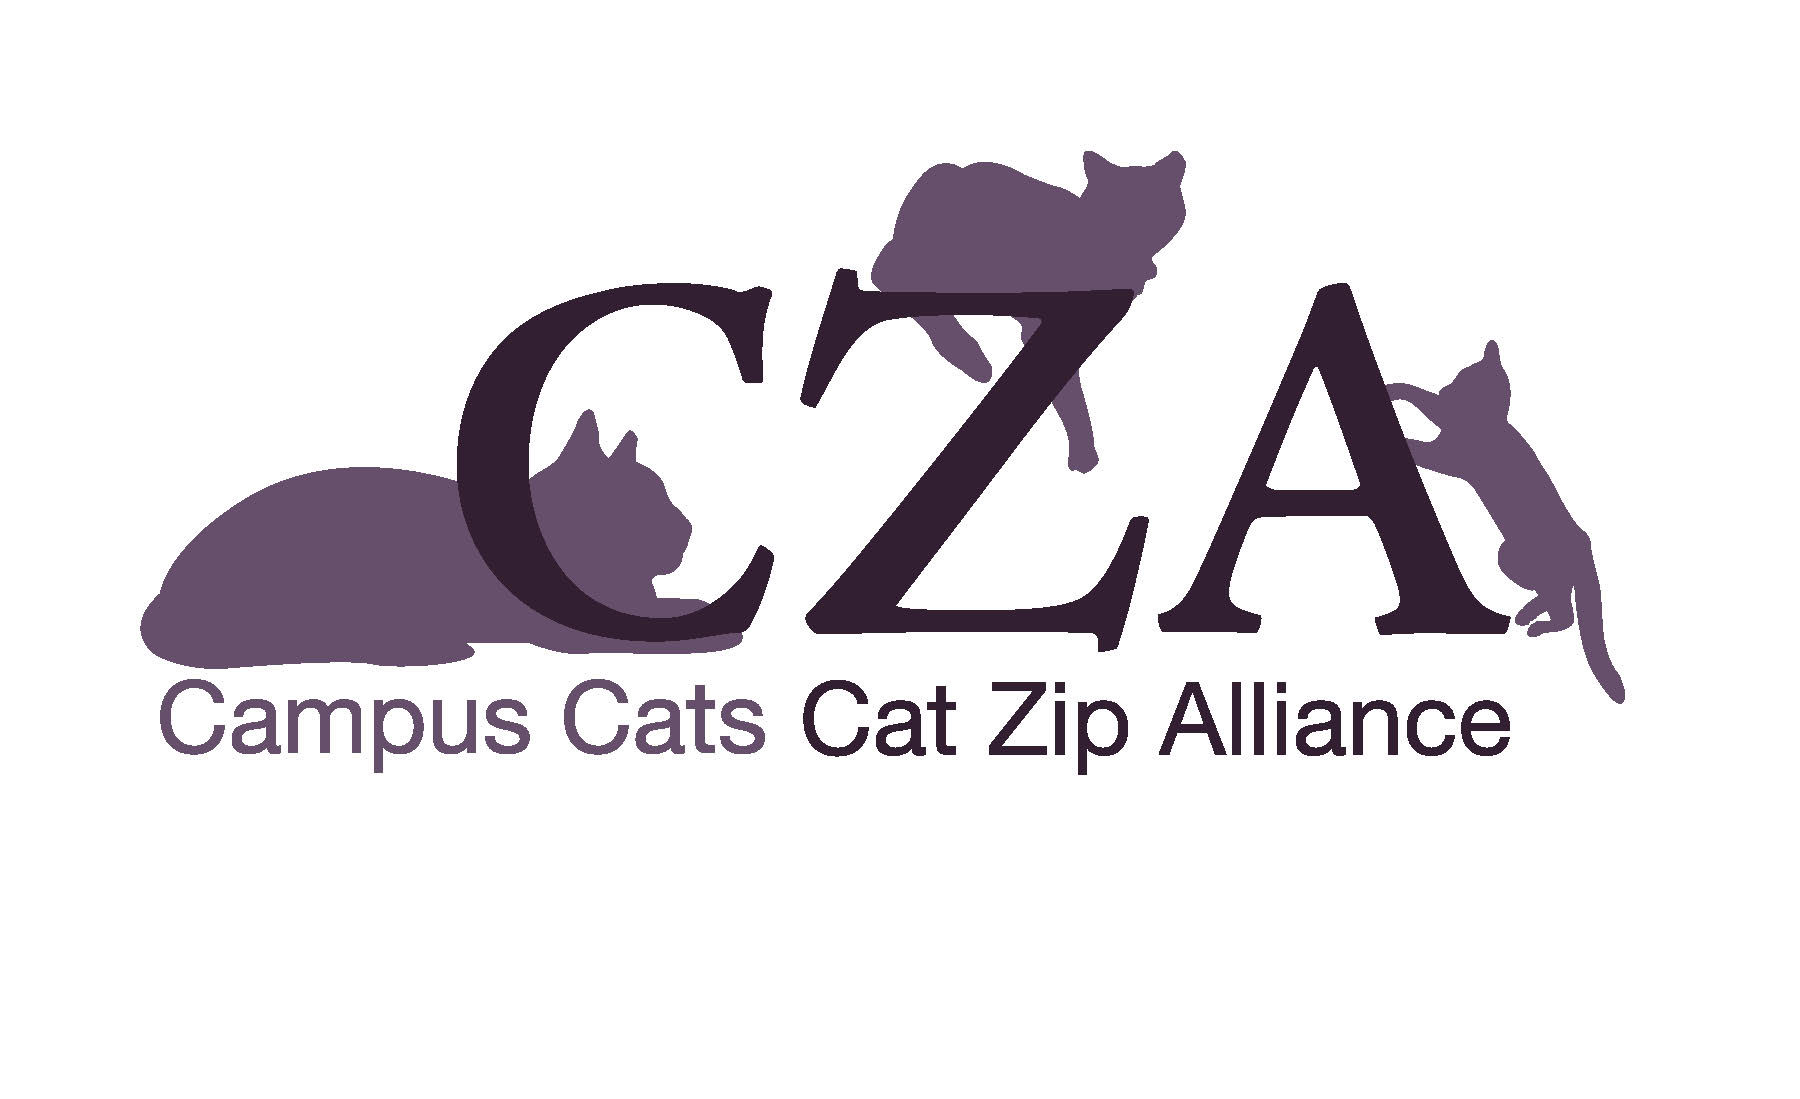 Cat Zip Alliance/Campus Cats